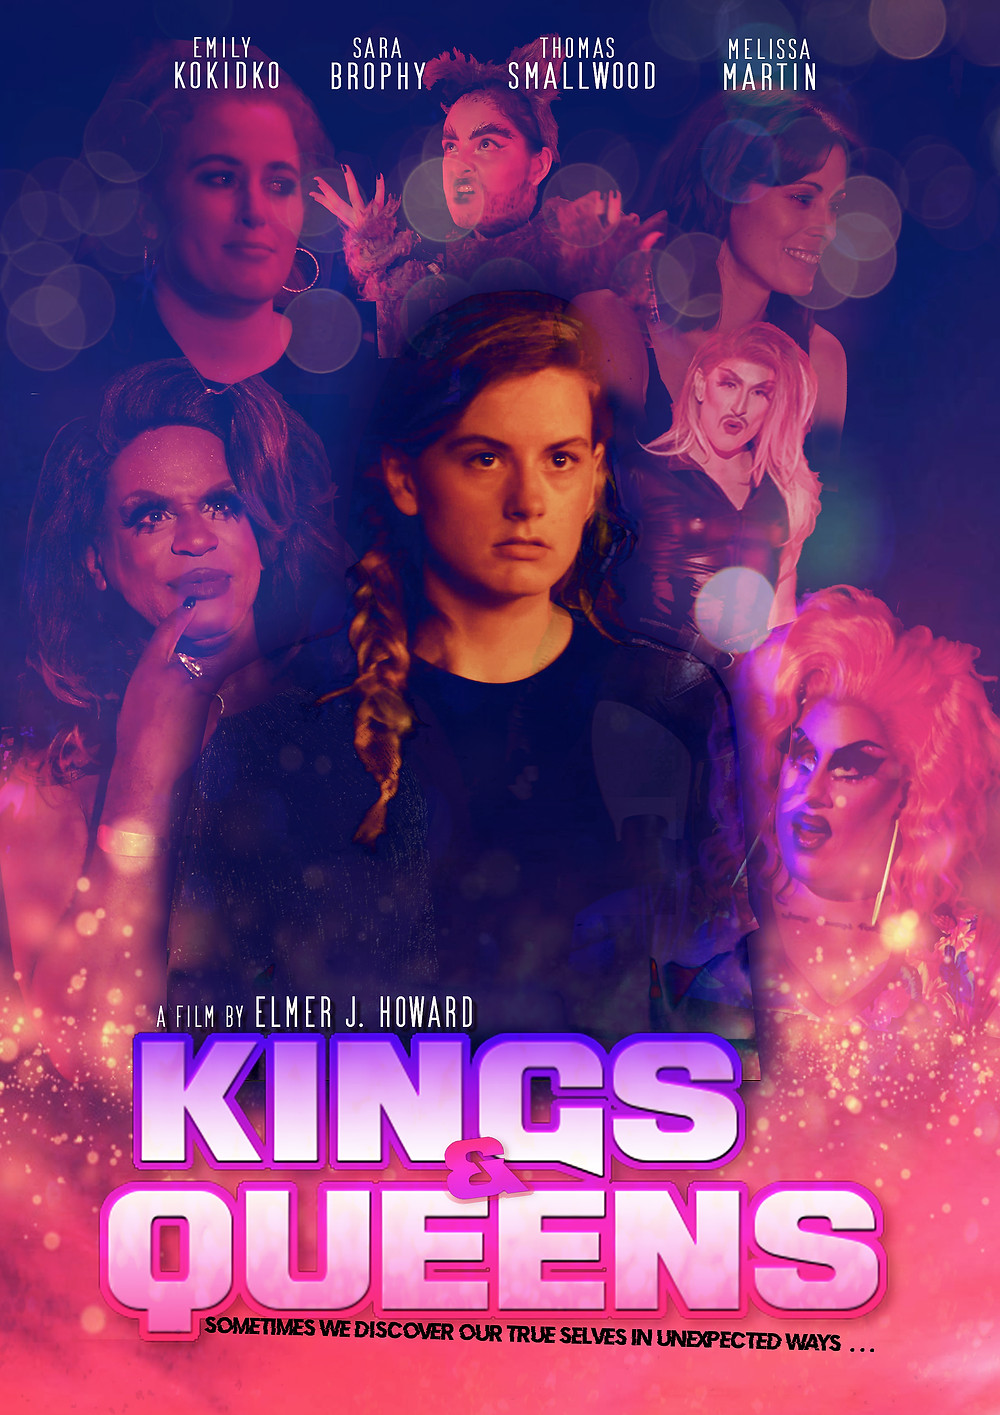 A colorful poster featuring main character Lucy at the center, surrounded by the supporting cast including the film's various drag queen characters.